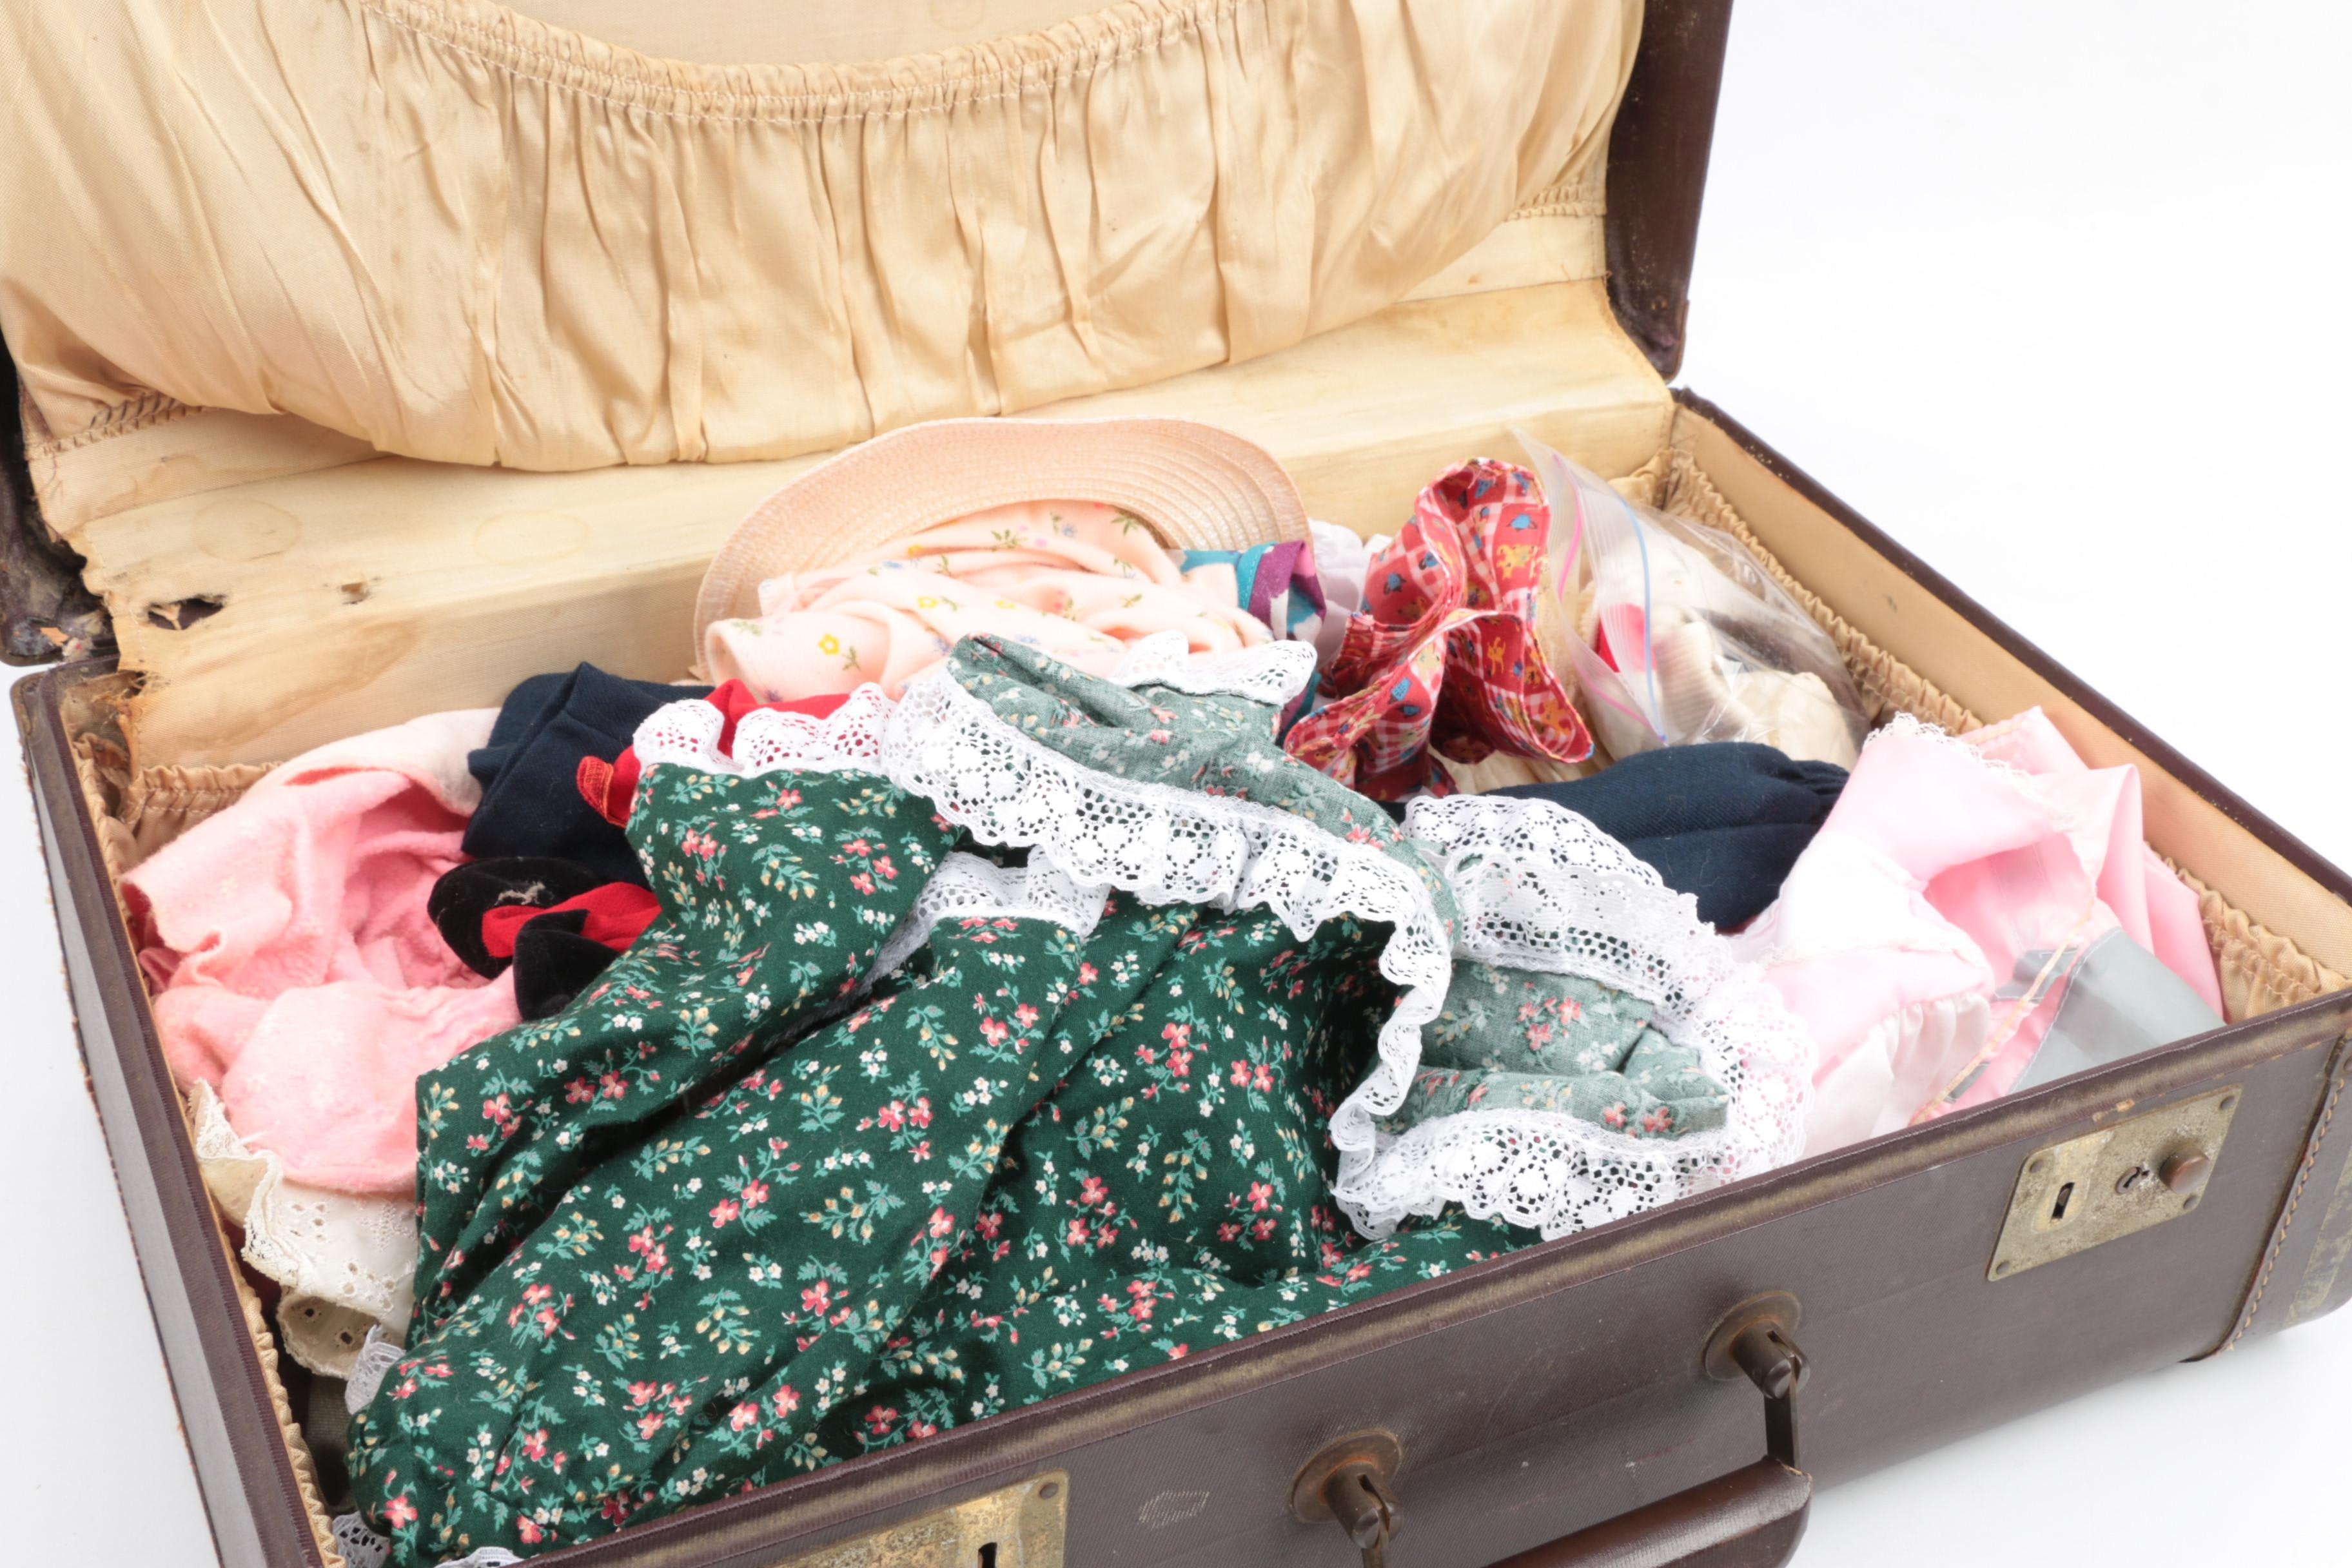 Doll Clothing in Vintage Suitcase